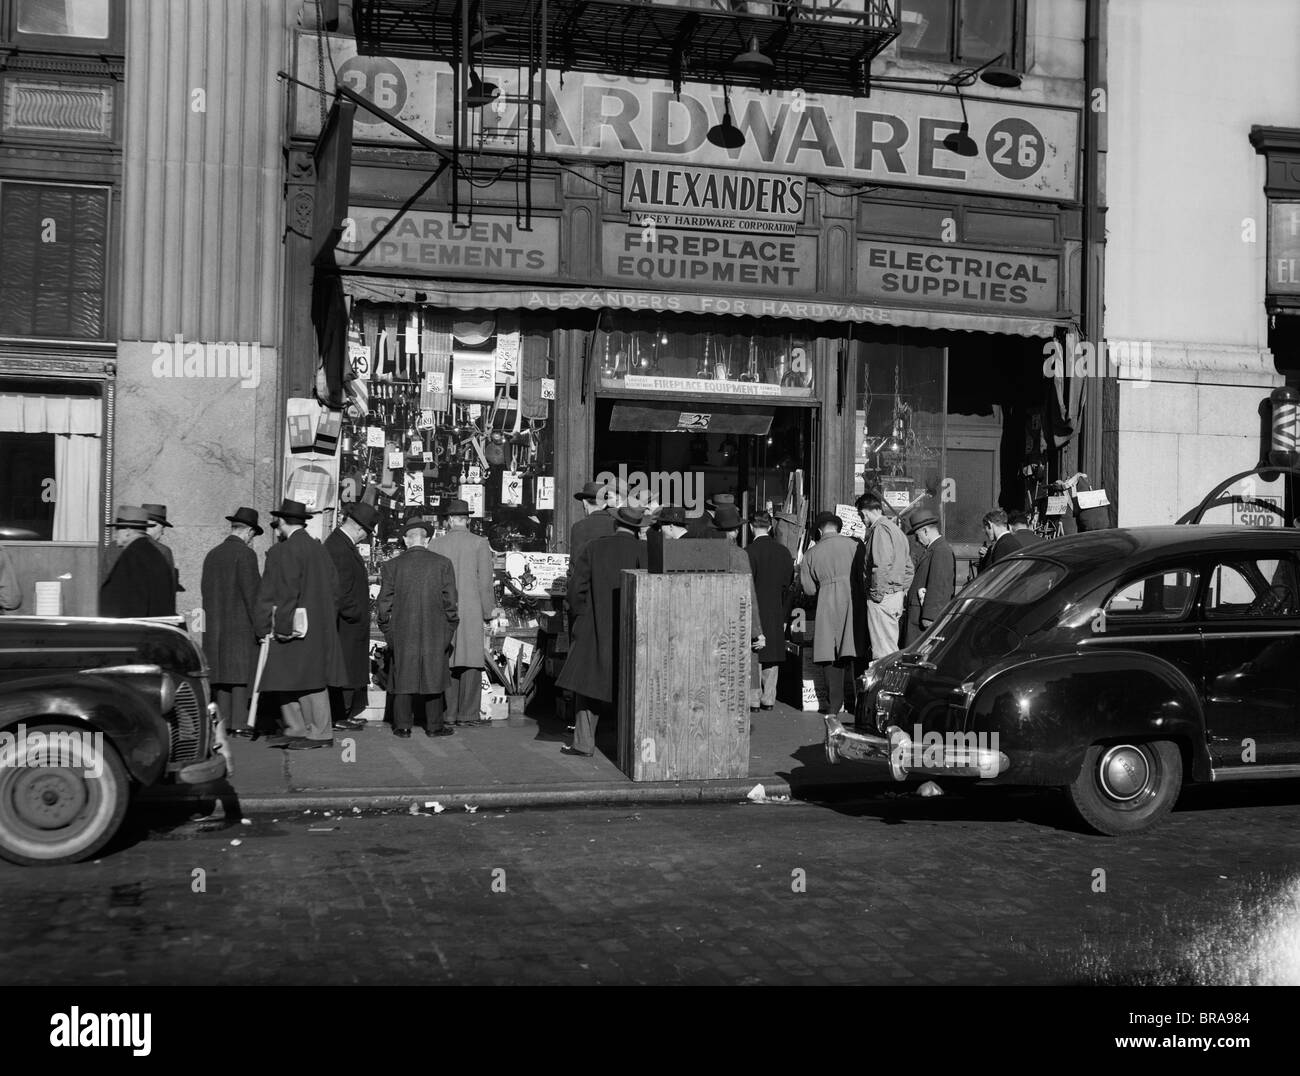 1940s NEW YORK CITY SIDEWALK CROWD GROUP PEOPLE MEN ONLY IN FRONT OF ALEXANDER'S HARDWARE STORE - Stock Image